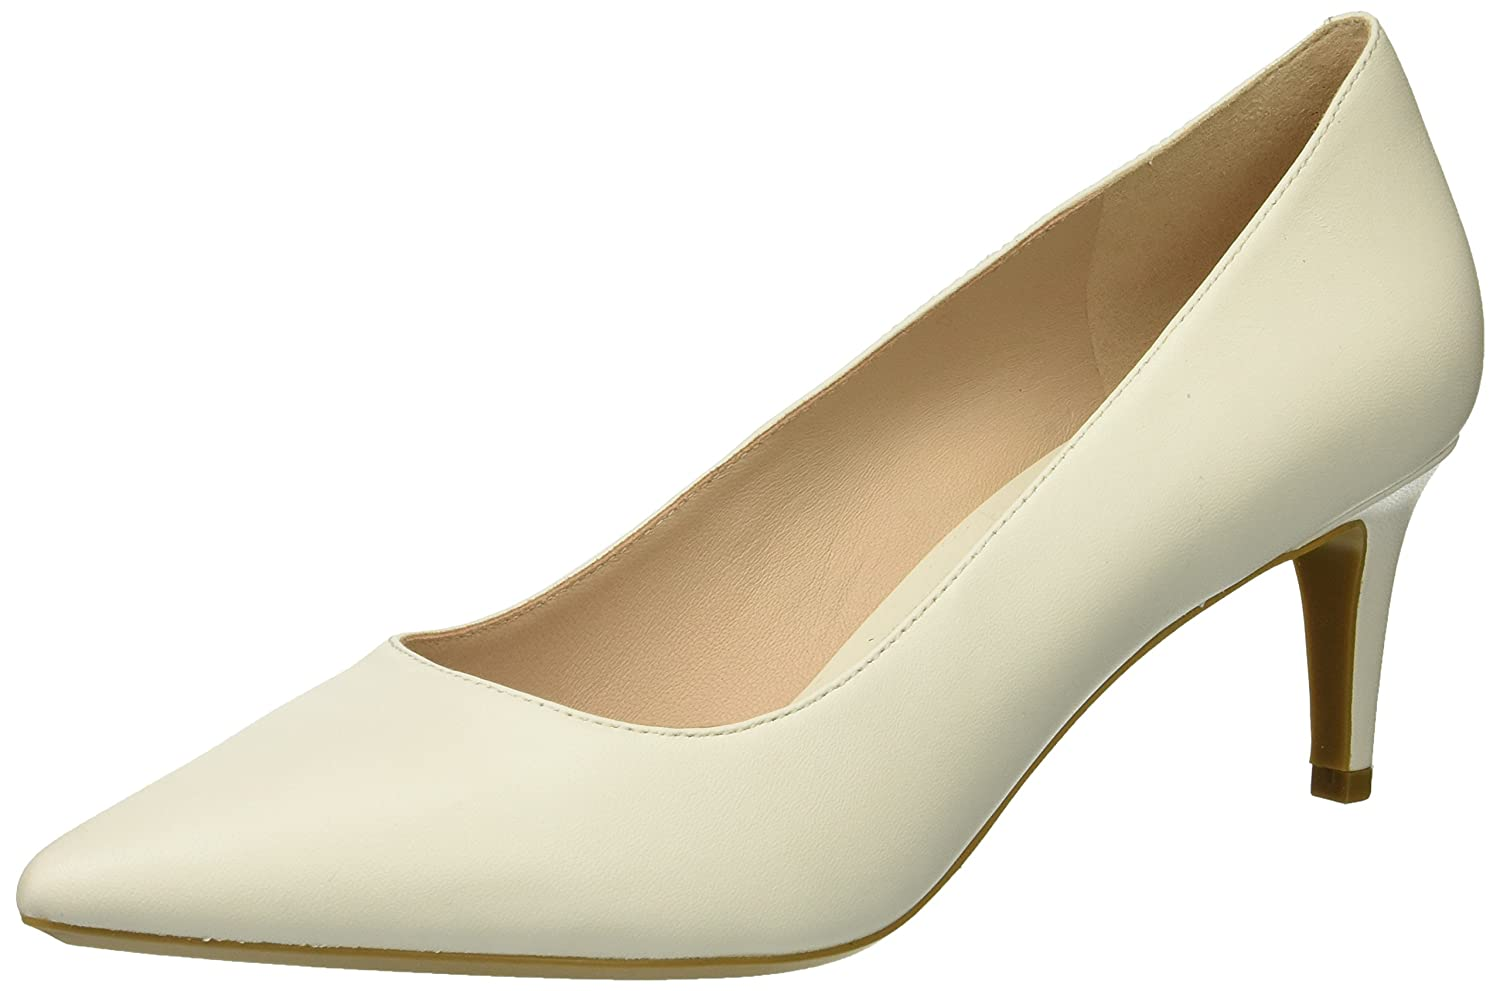 Nine West Women's SOHO9X9 Leather Pump B076HRR9KK 12 B(M) US|White